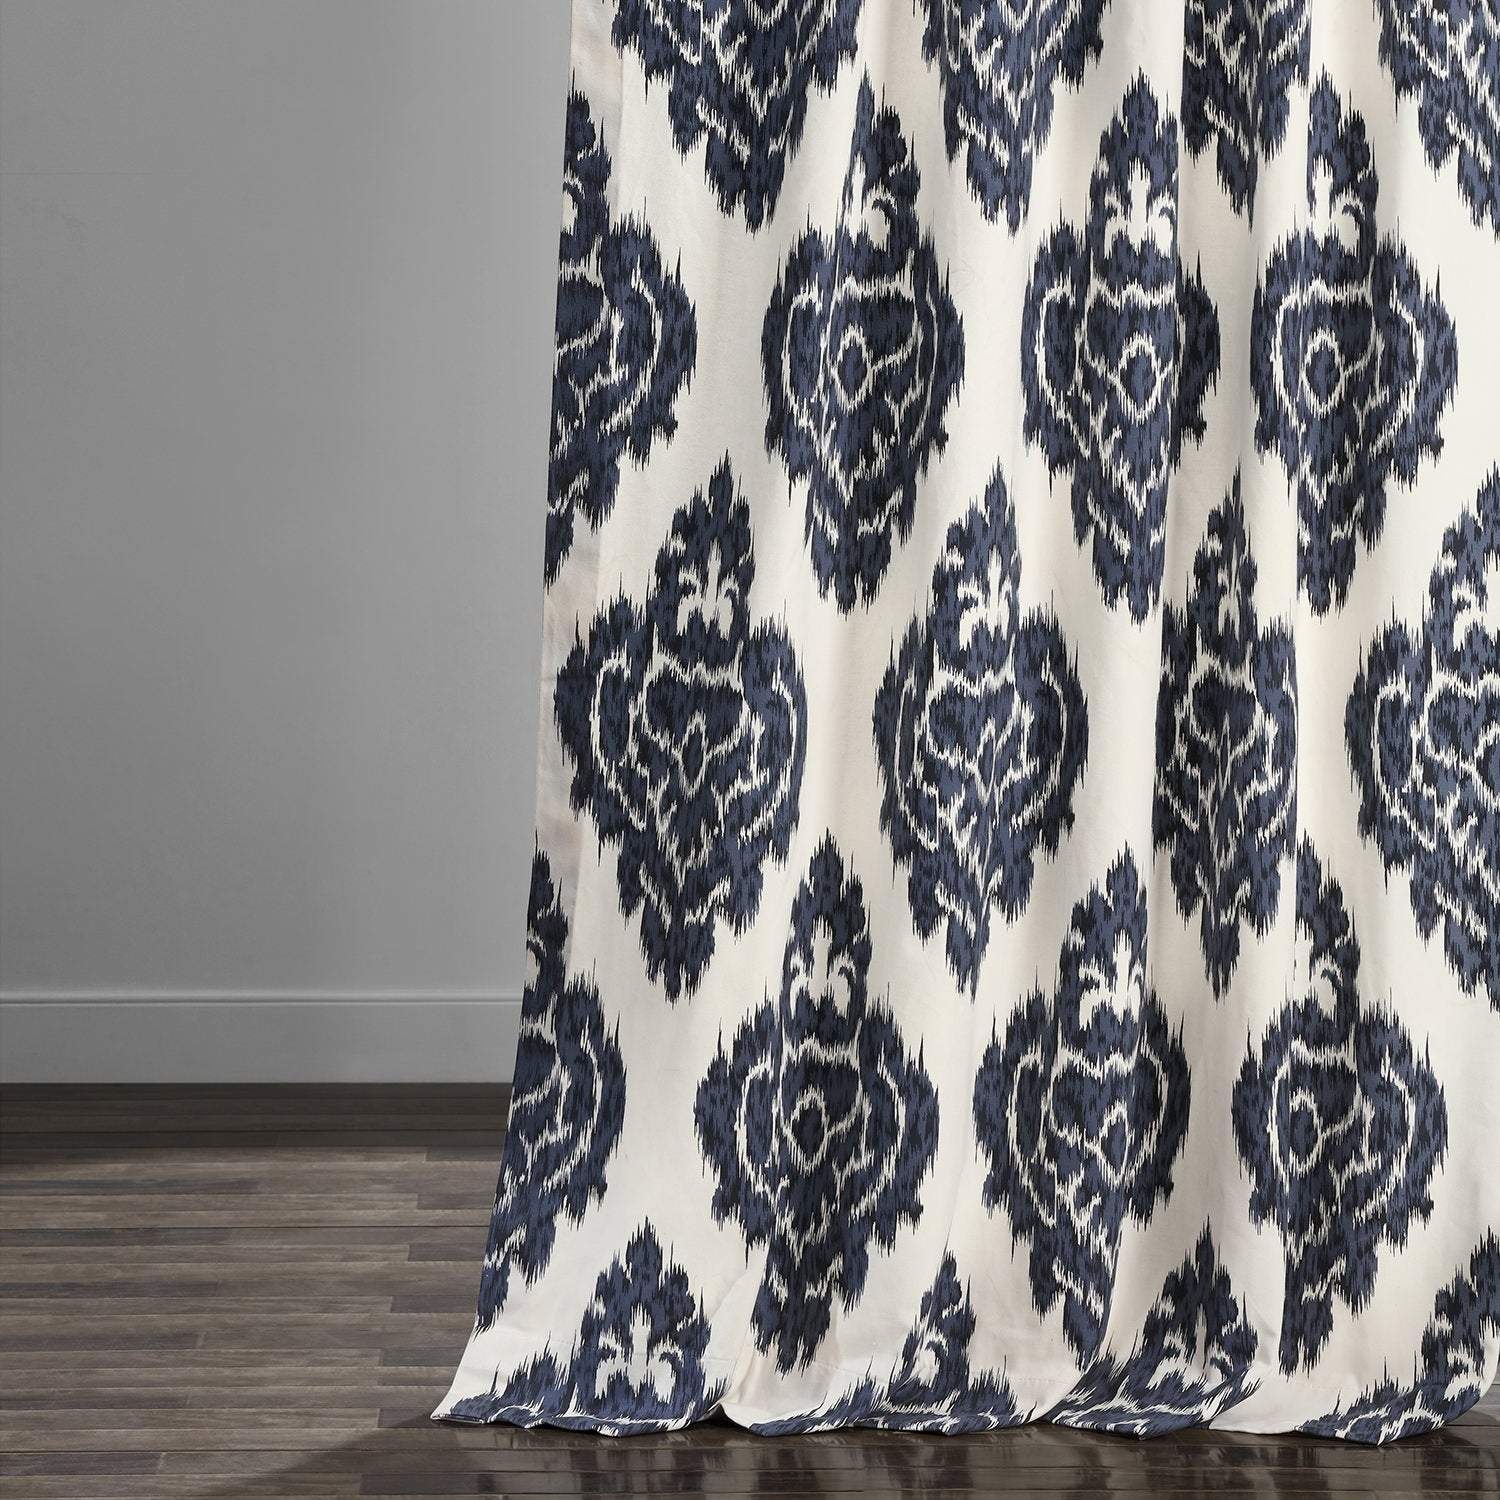 Exclusive Fabrics Ikat Blue Printed Cotton Curtain Panel Inside Ikat Blue Printed Cotton Curtain Panels (View 8 of 20)